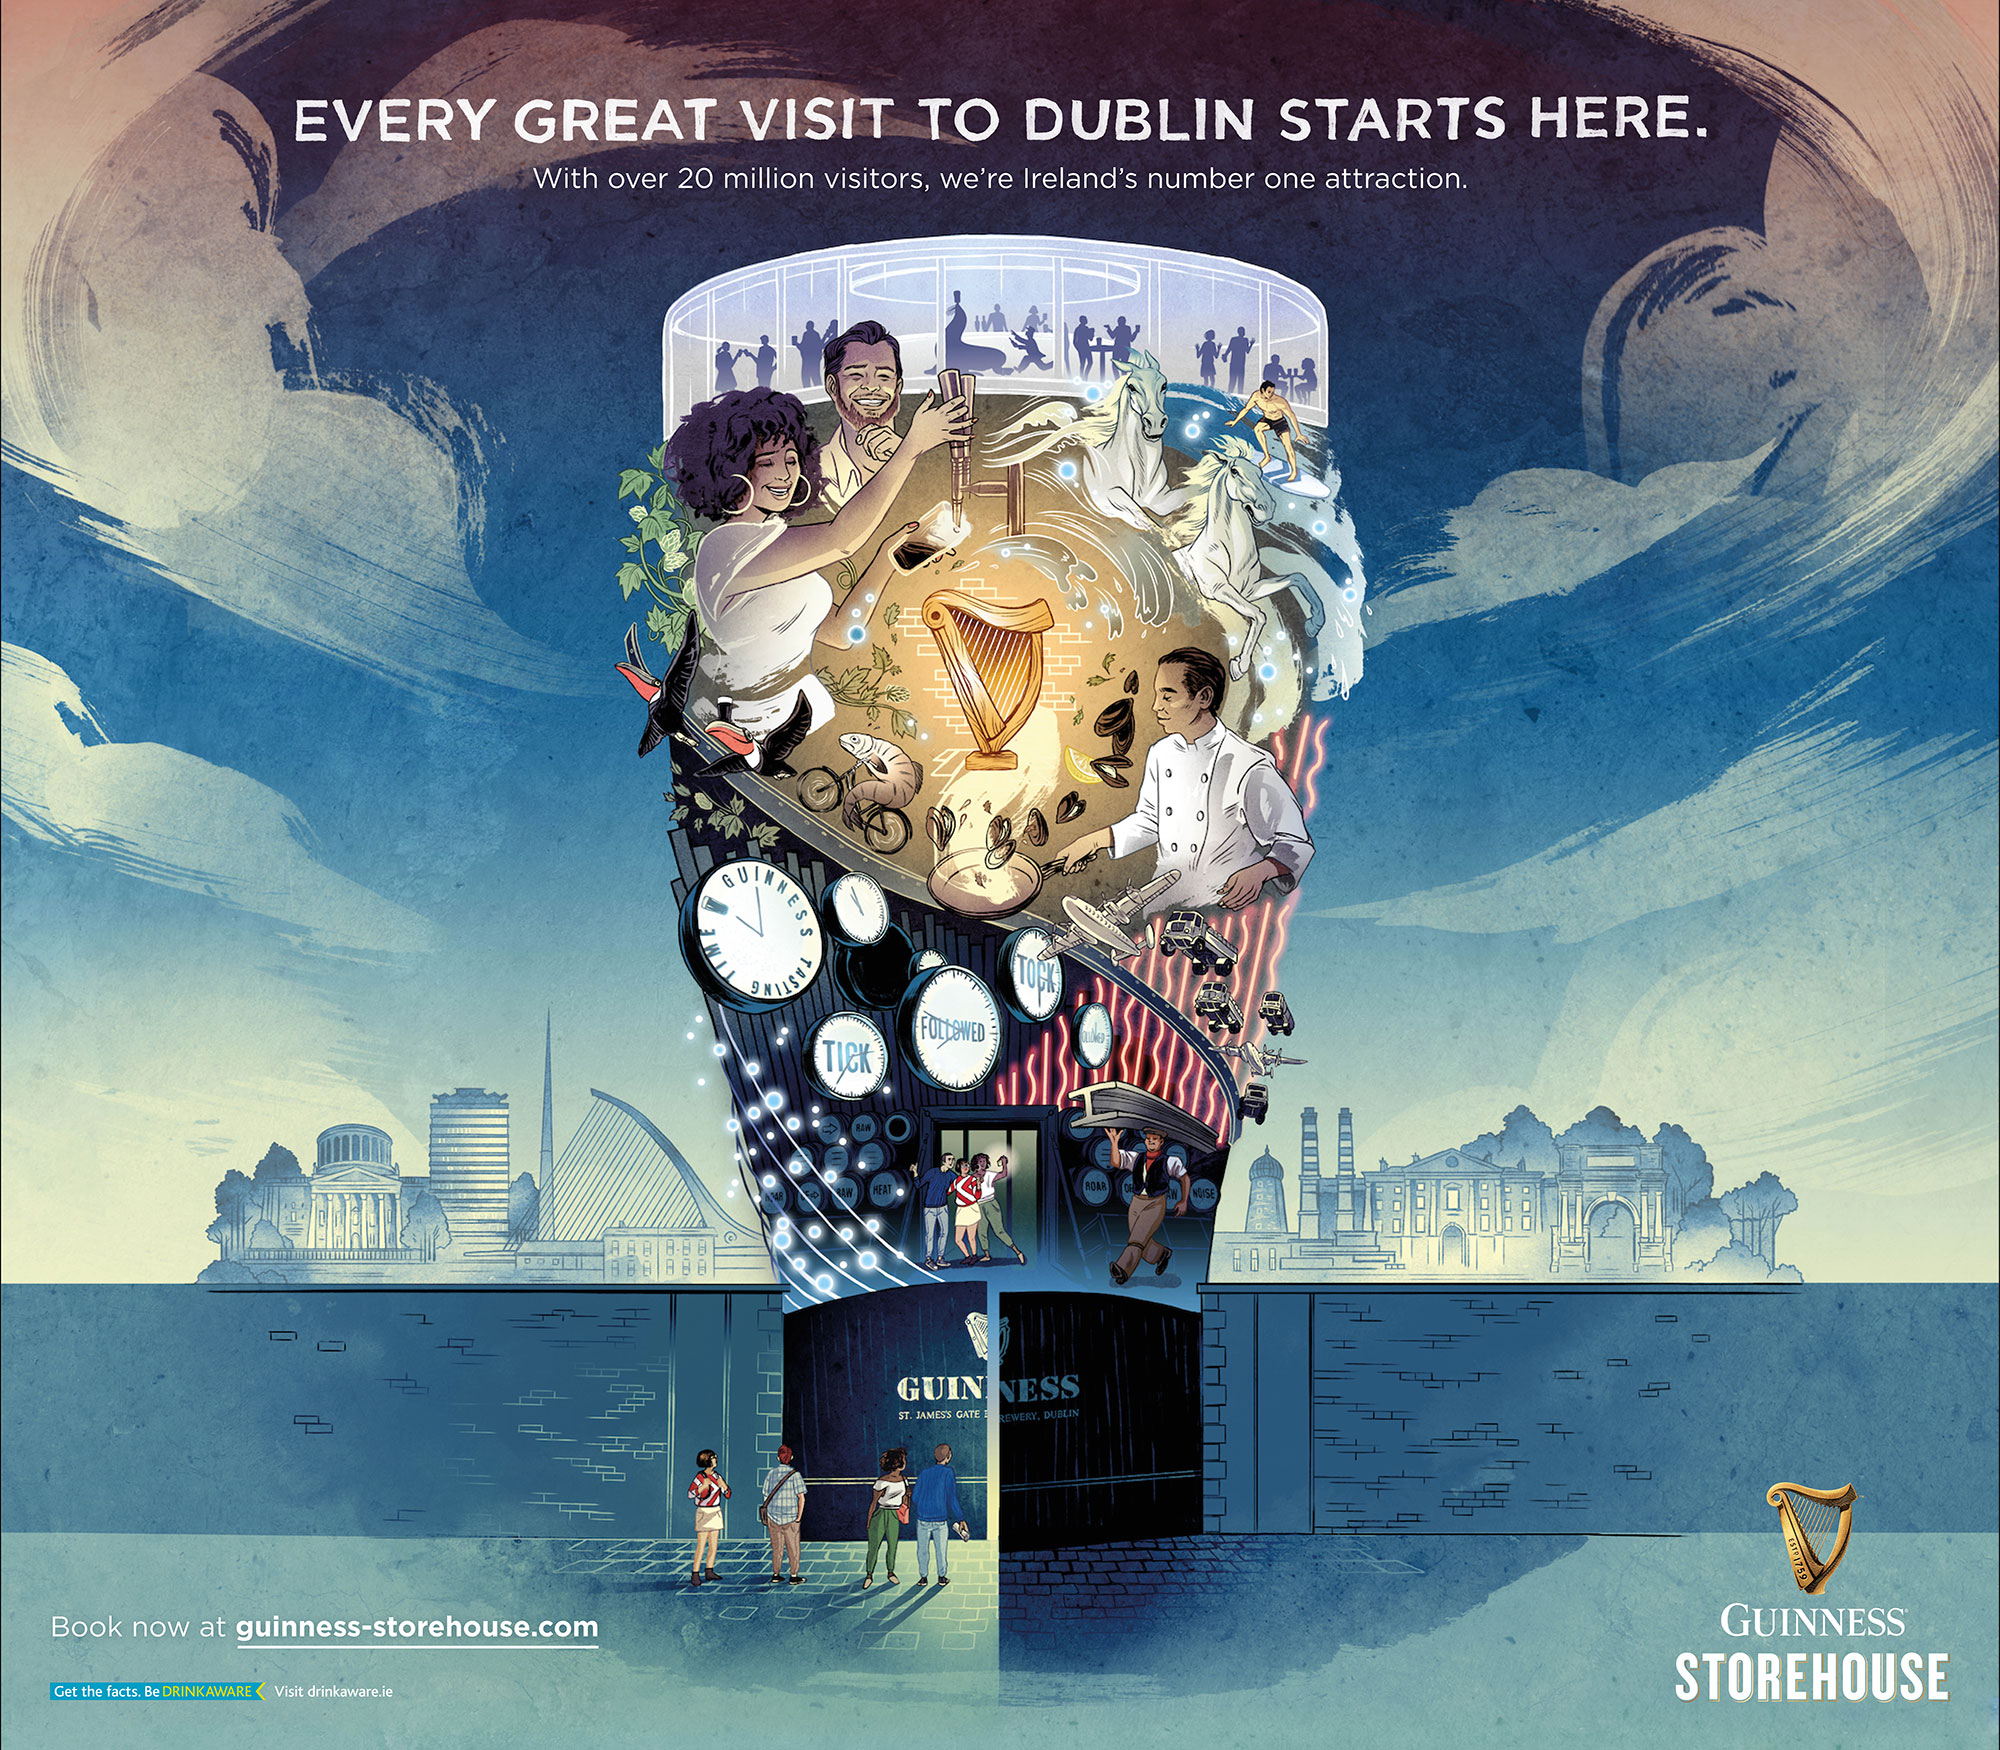 Cover image: Guinness Storehouse experience visual